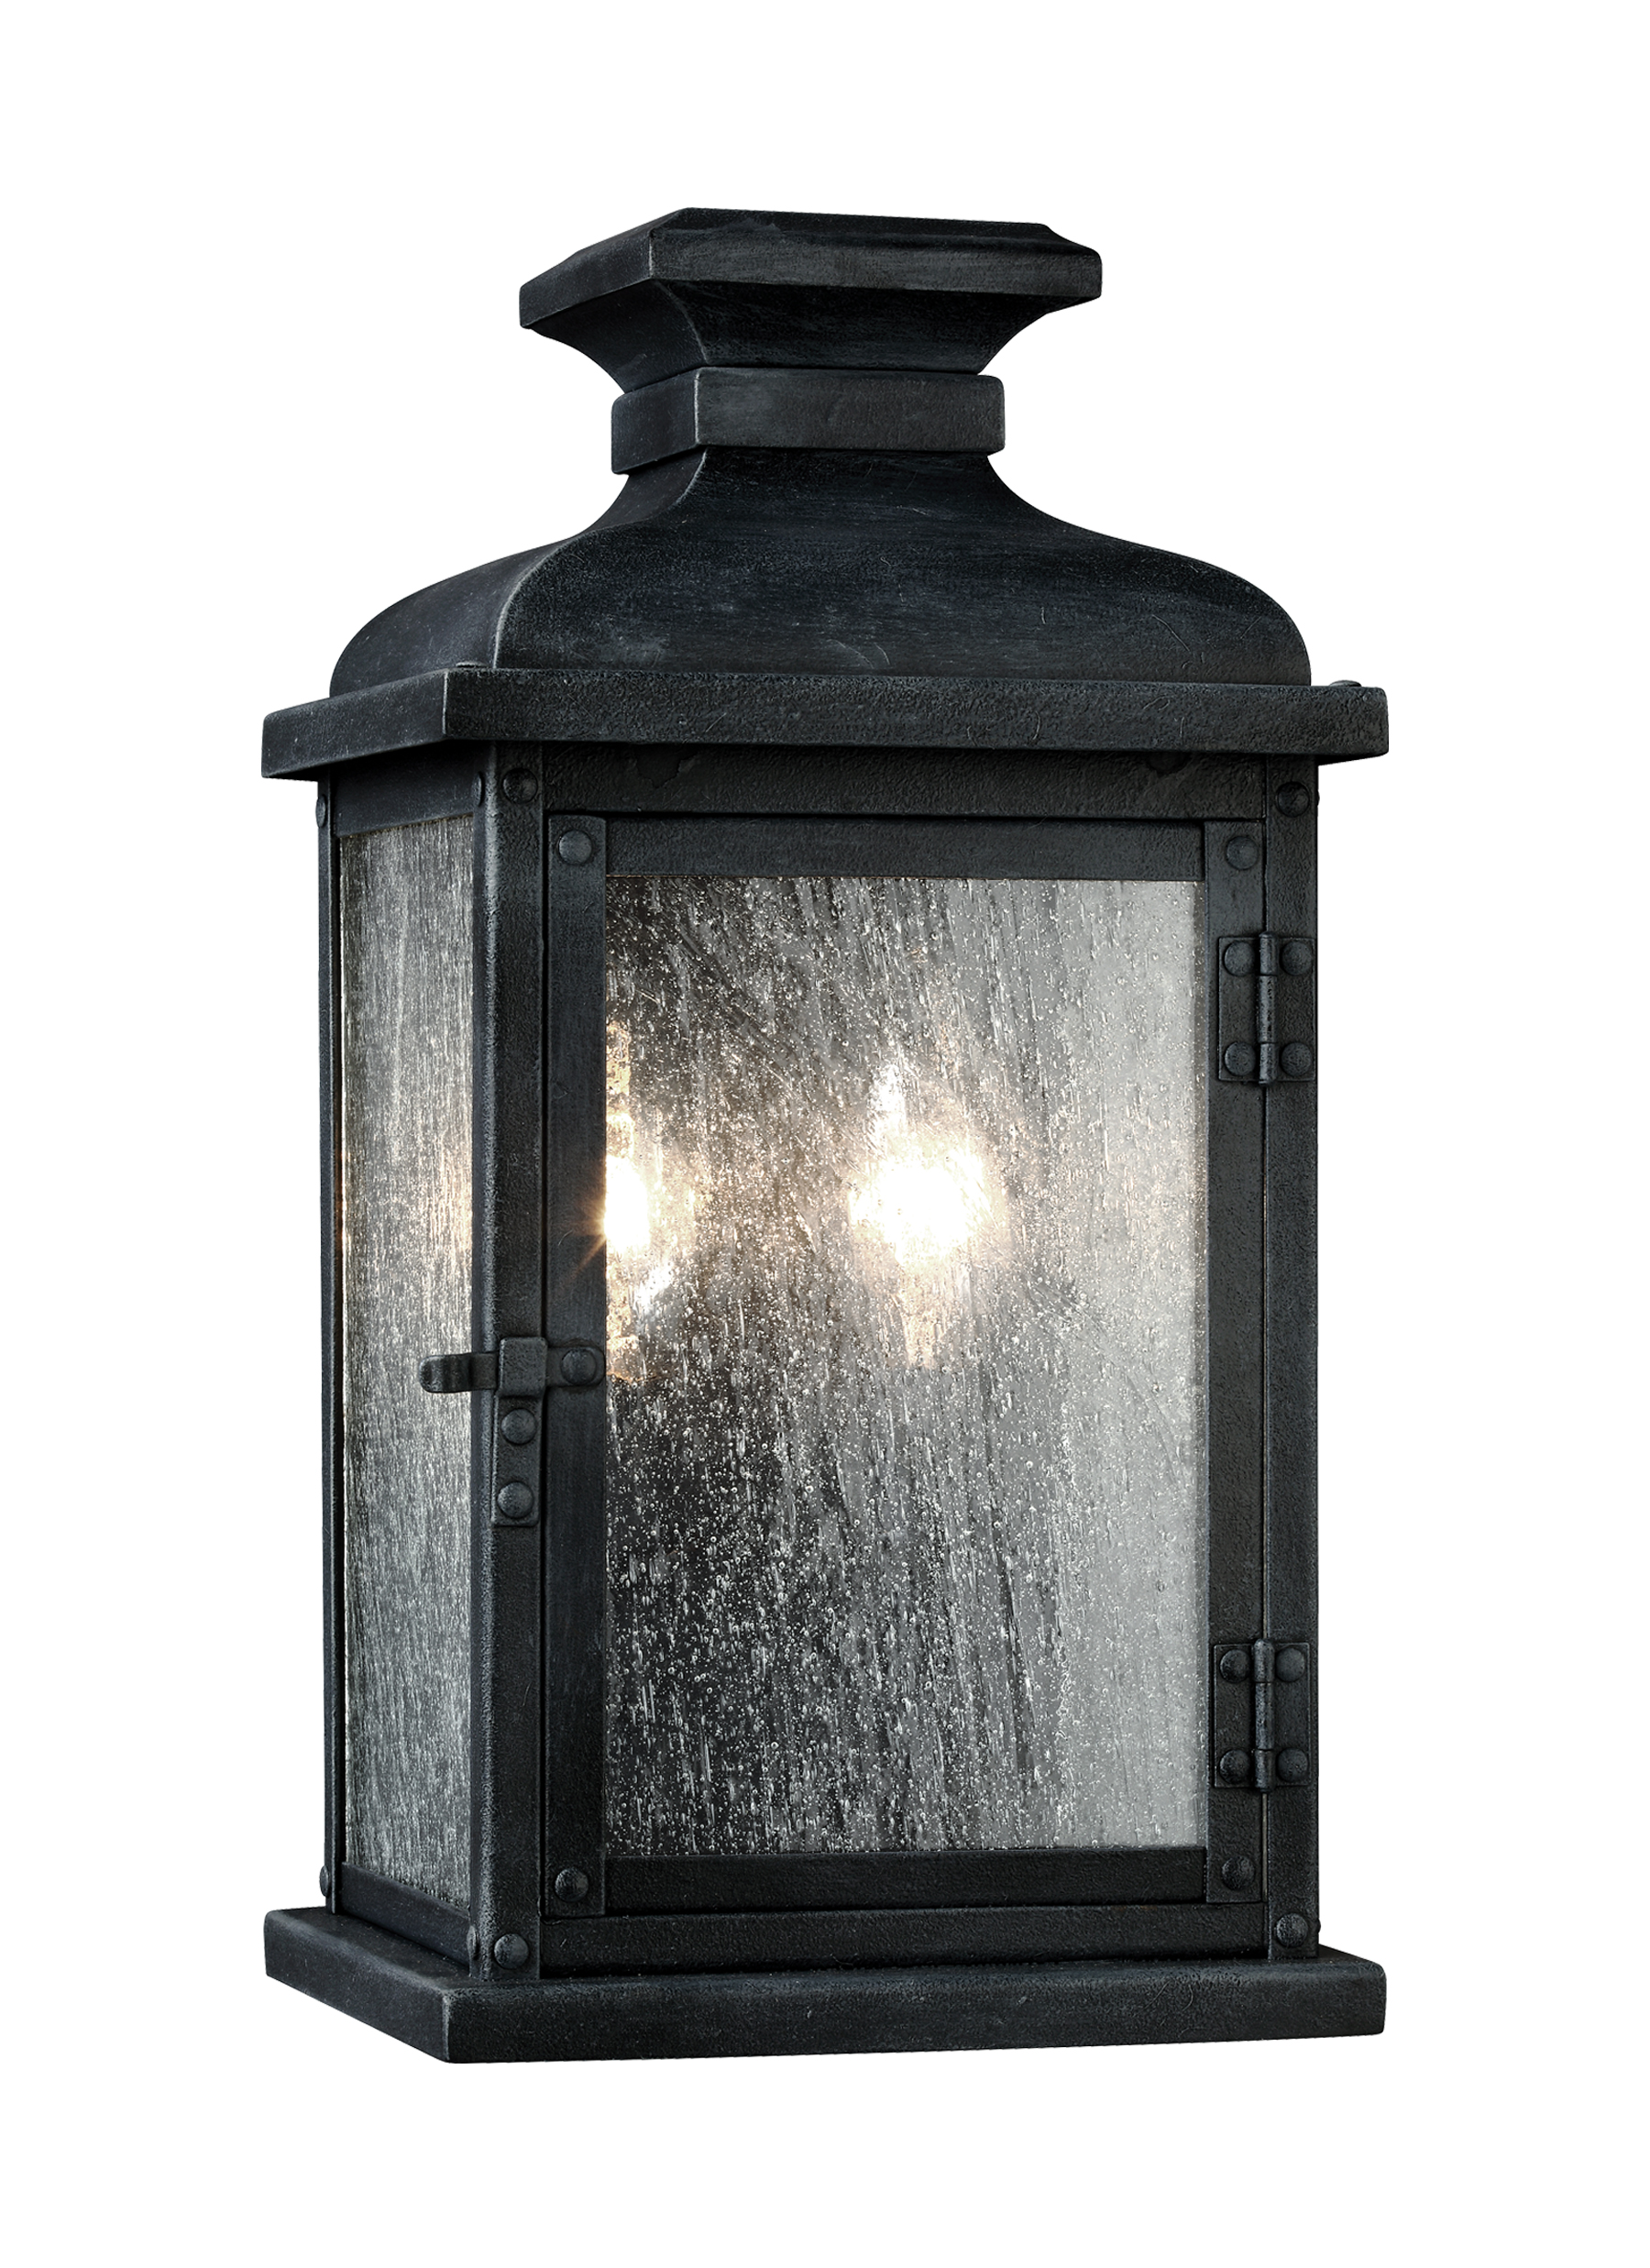 Outdoor Sconce Lights Ol11100dwz2 light outdoor sconcedark weathered zinc loading zoom workwithnaturefo